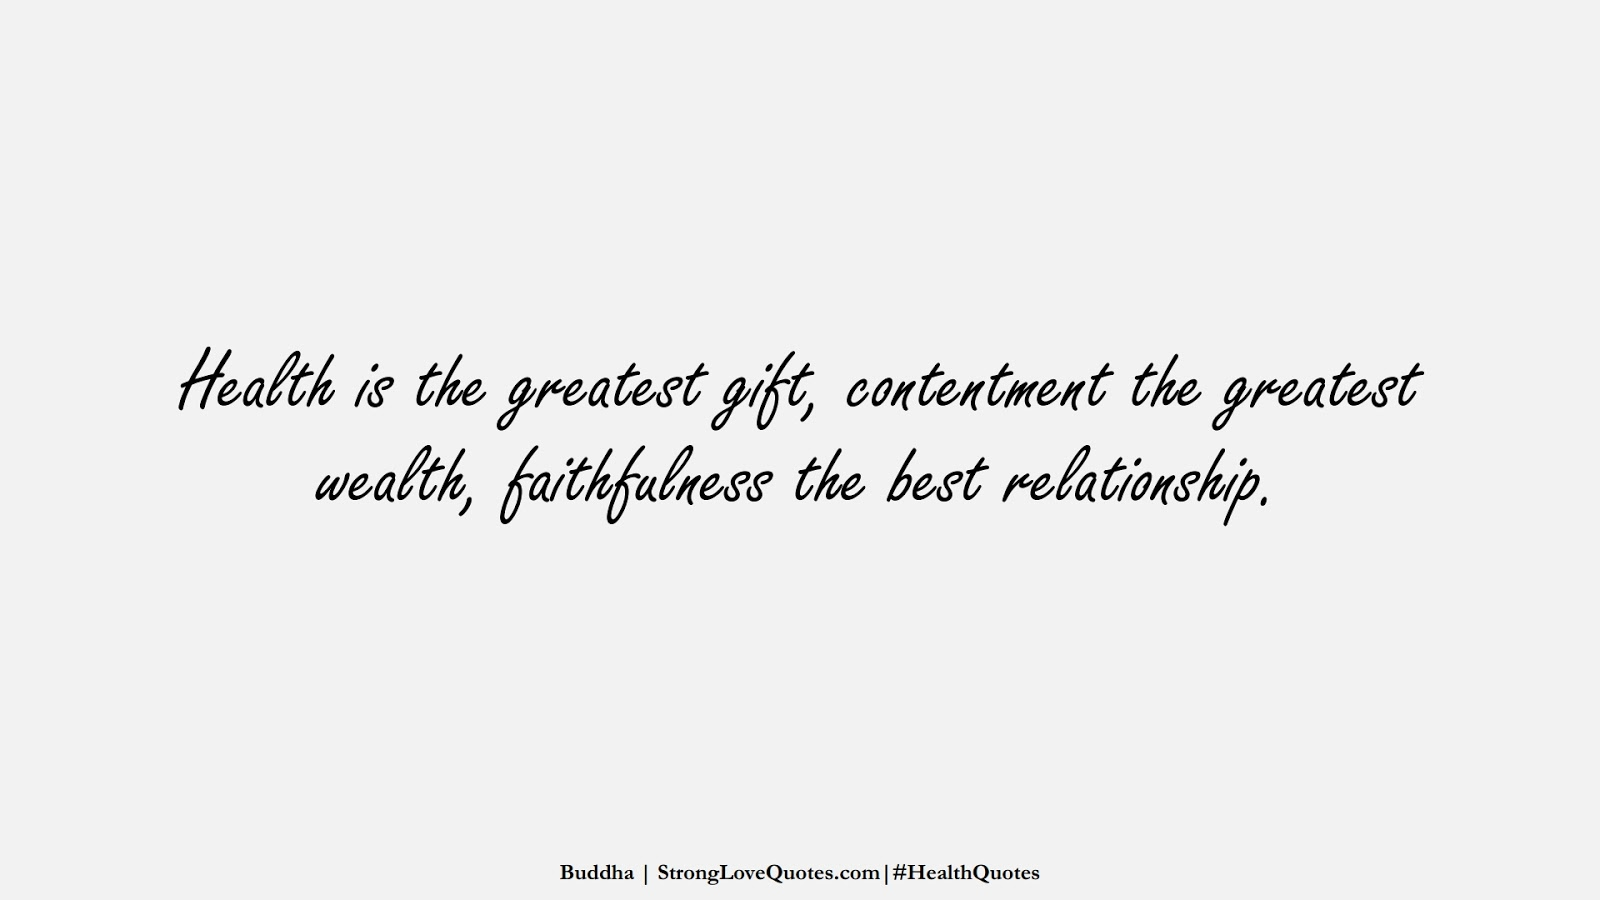 Health is the greatest gift, contentment the greatest wealth, faithfulness the best relationship. (Buddha);  #HealthQuotes